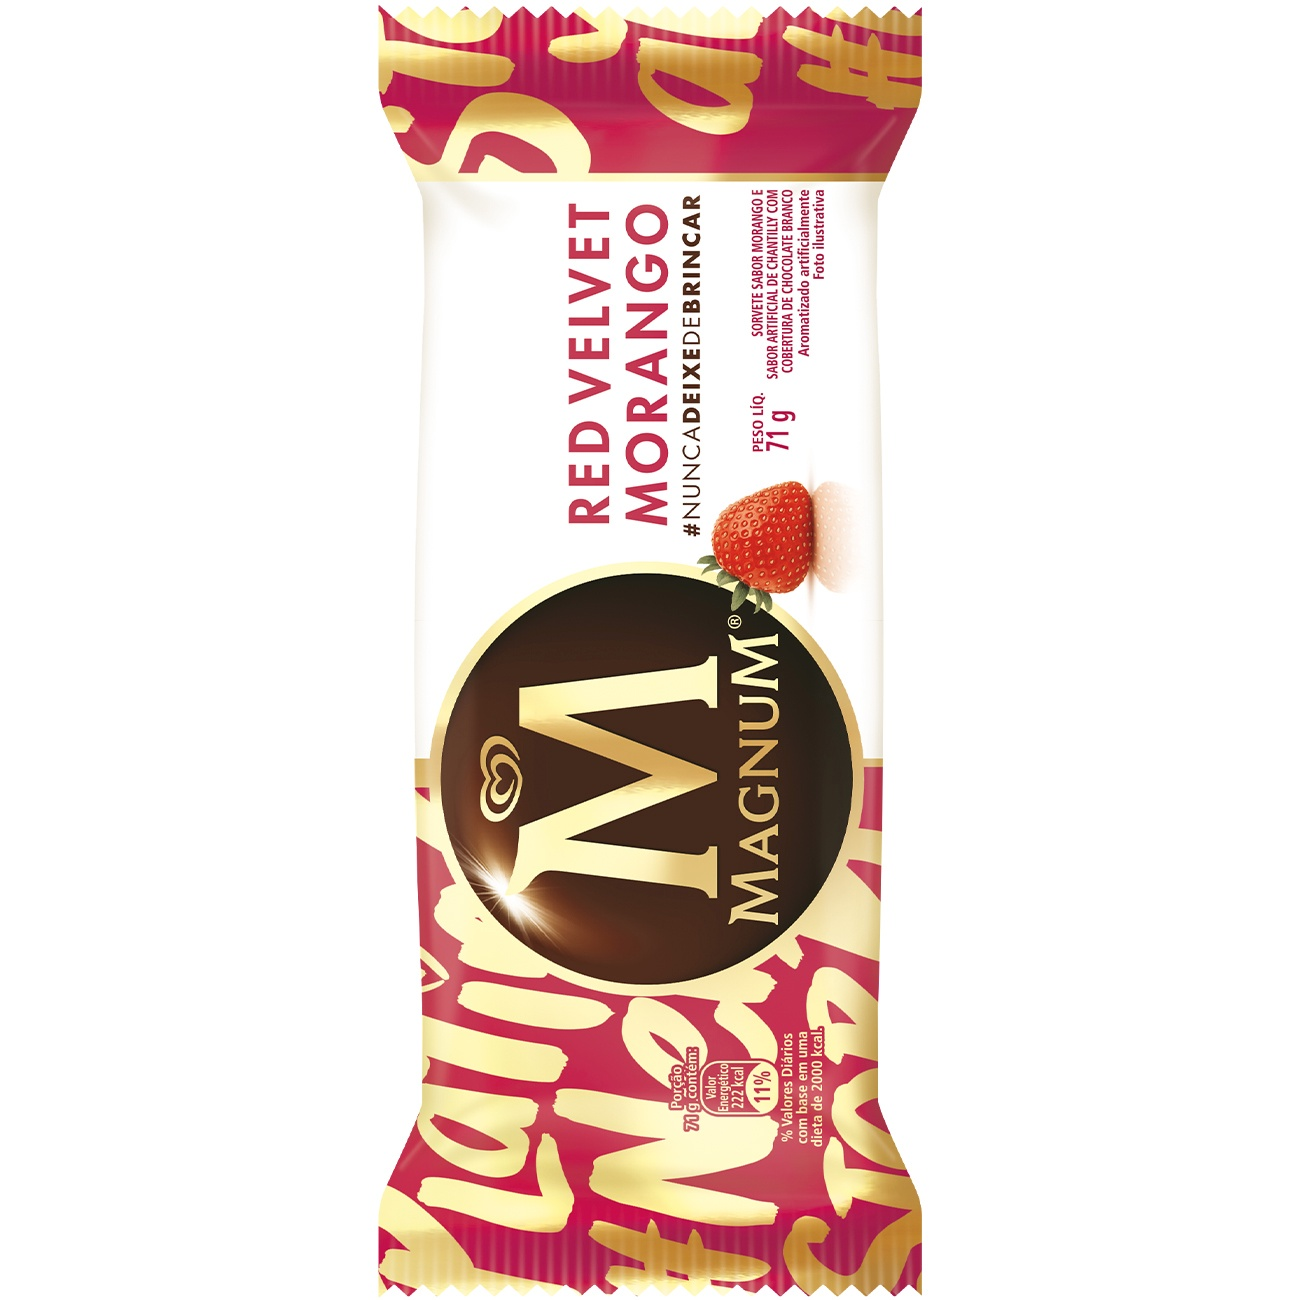 Sorvete Kibon Magnum Red Velvet 90ML | Caixa com 18